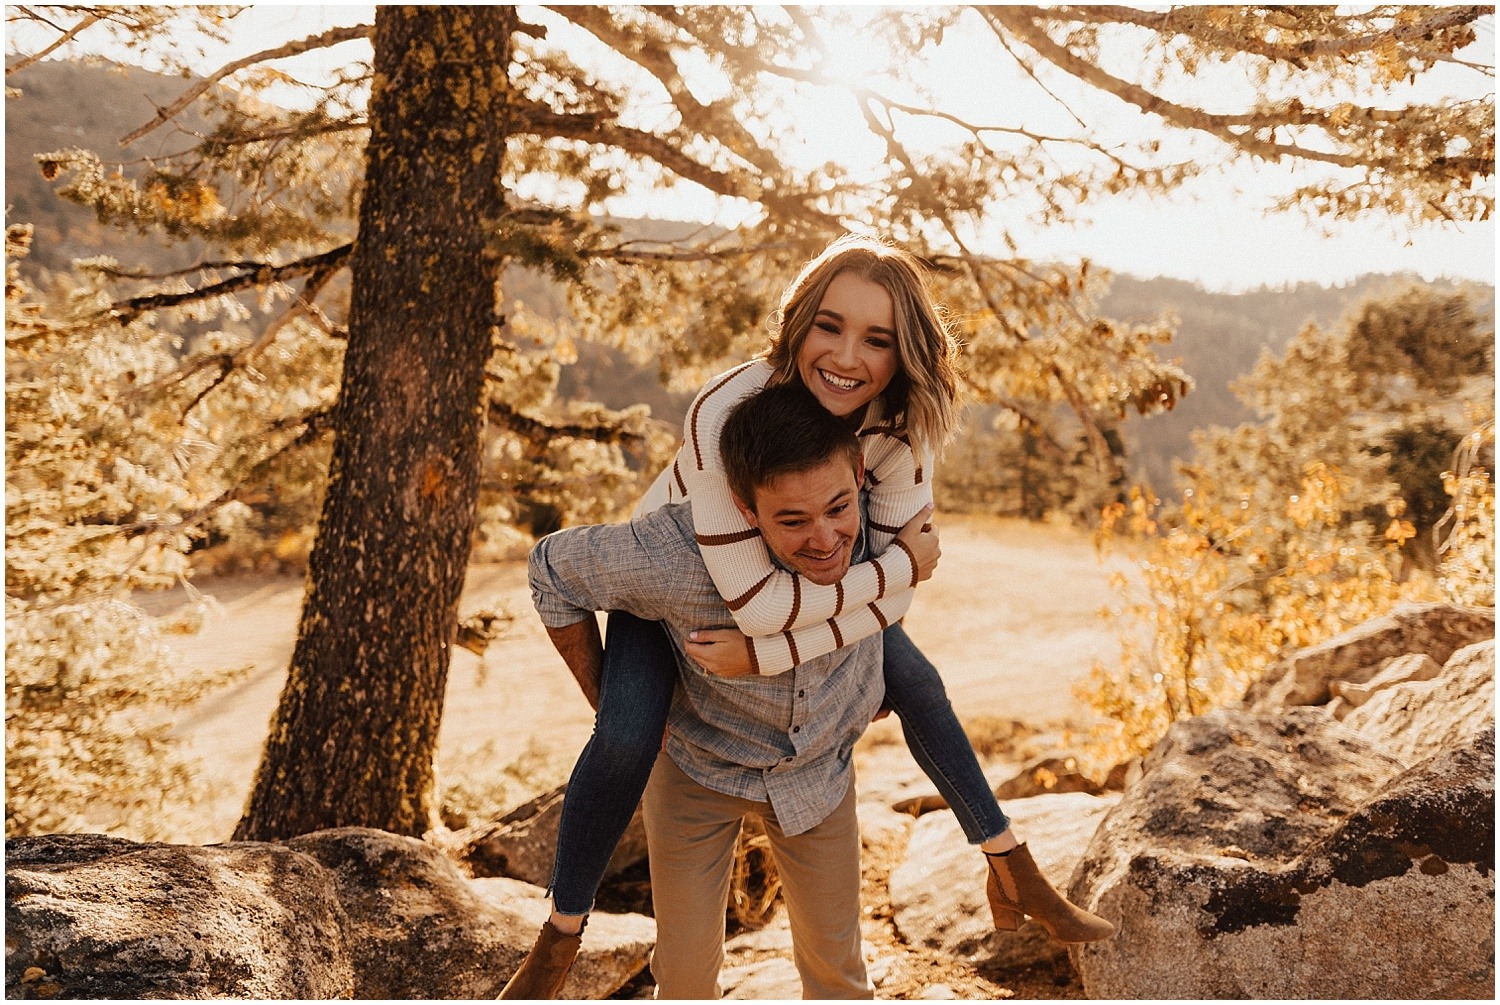 sunrise-mountain-engagement-session-boise-idaho13.jpg